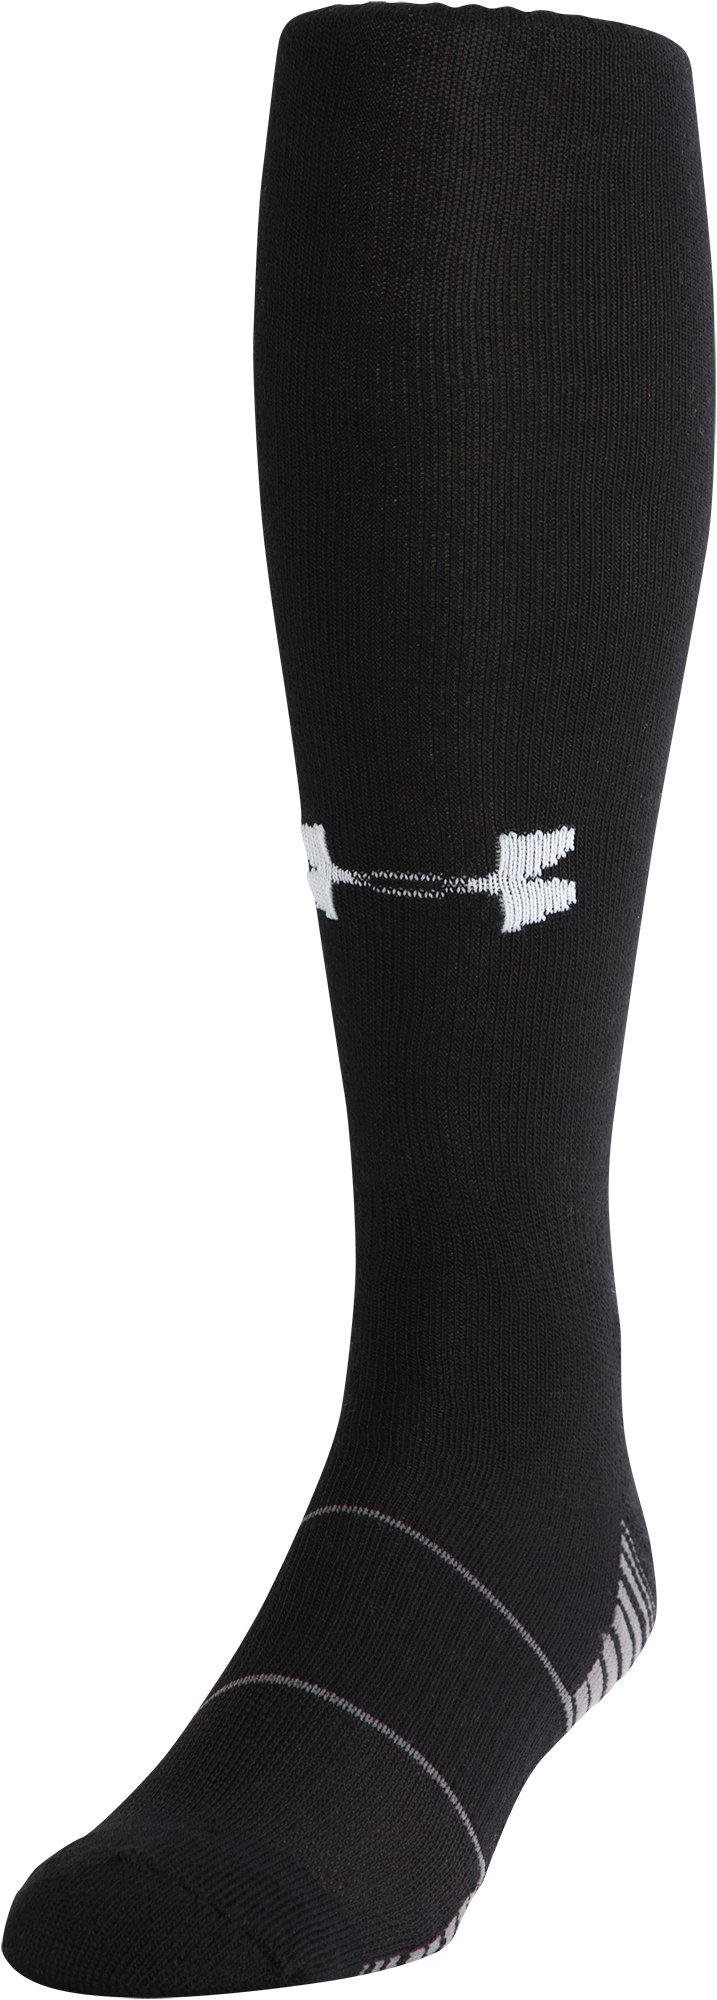 UA Over-The-Calf Team Socks, Black